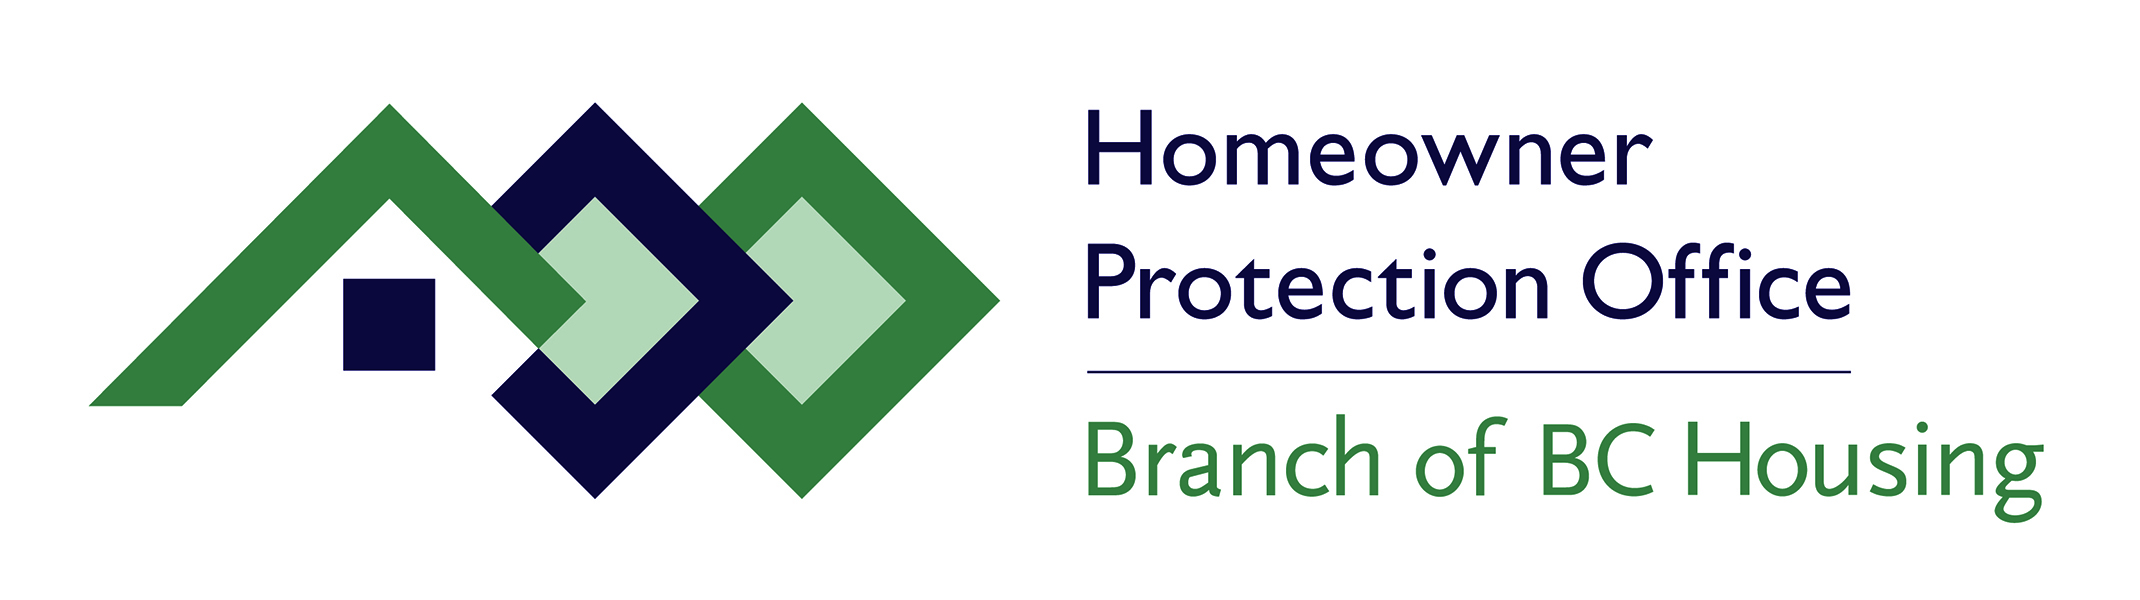 homeowners protection office